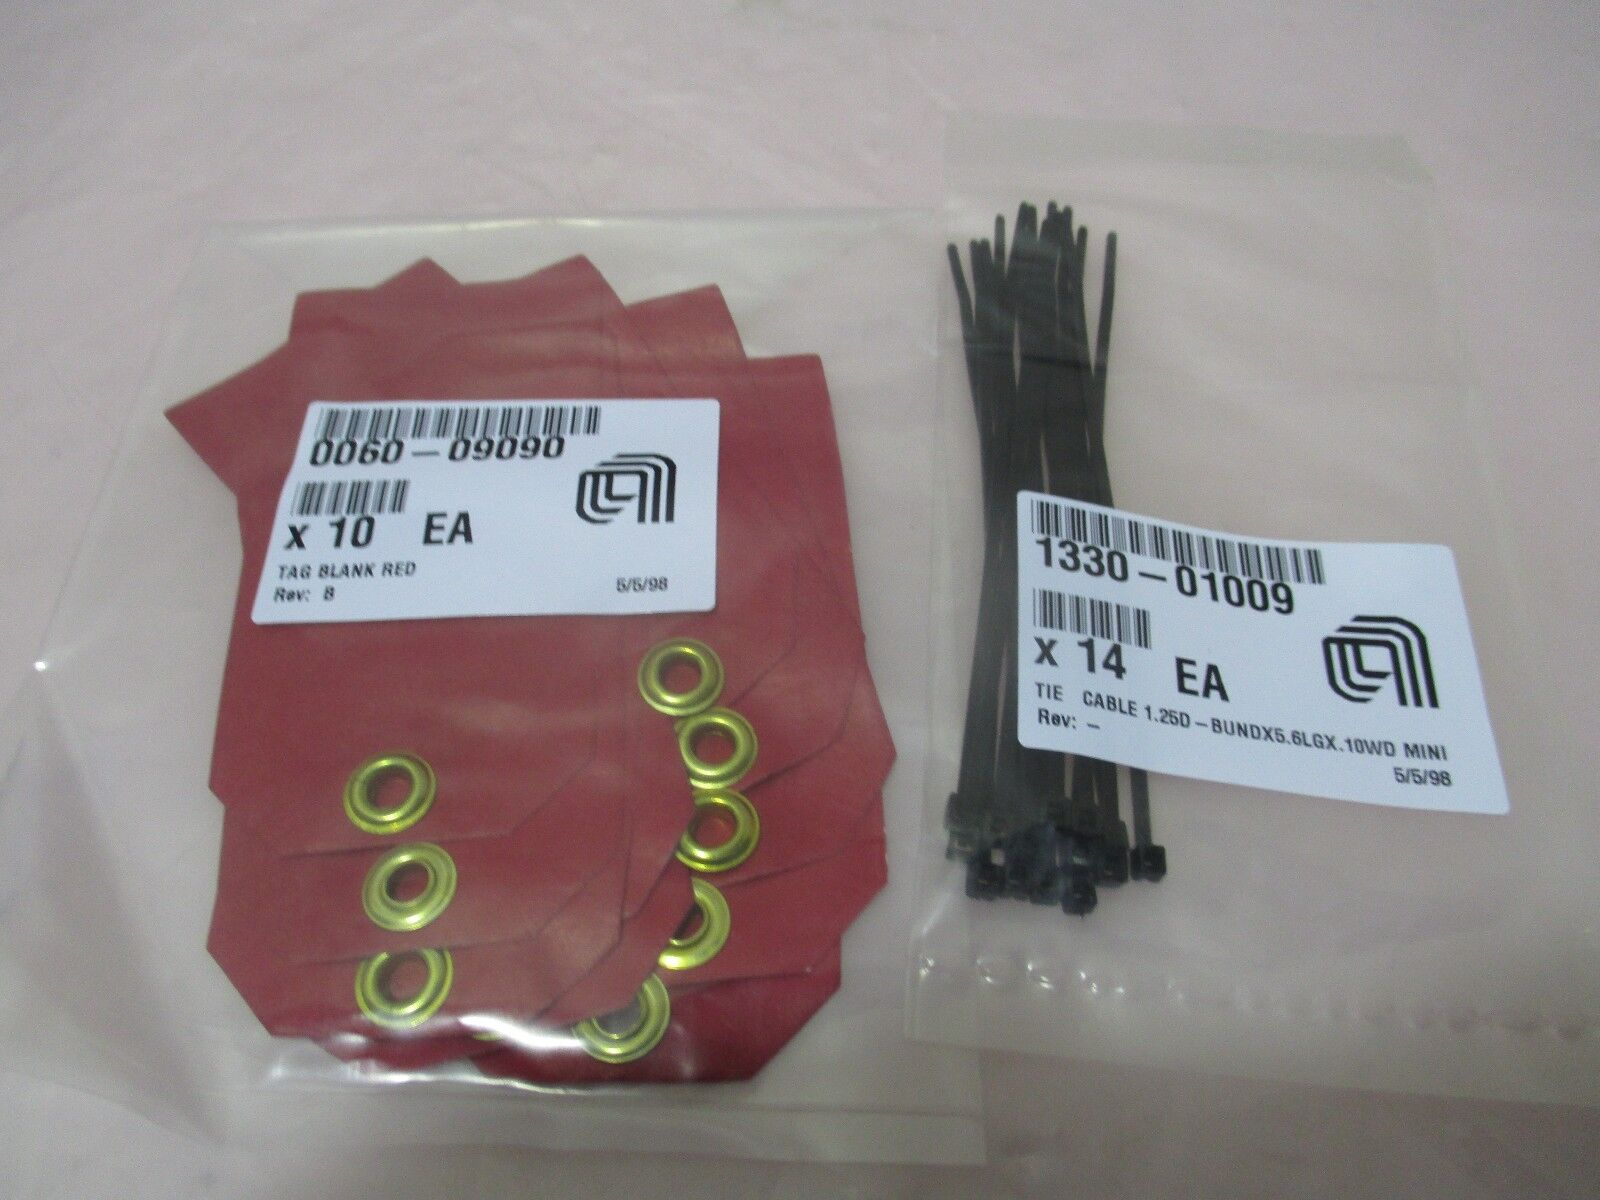 10 AMAT 0060-09090 Tag Blank Red & 14 AMAT 1330-01009 Tie Cable 421053